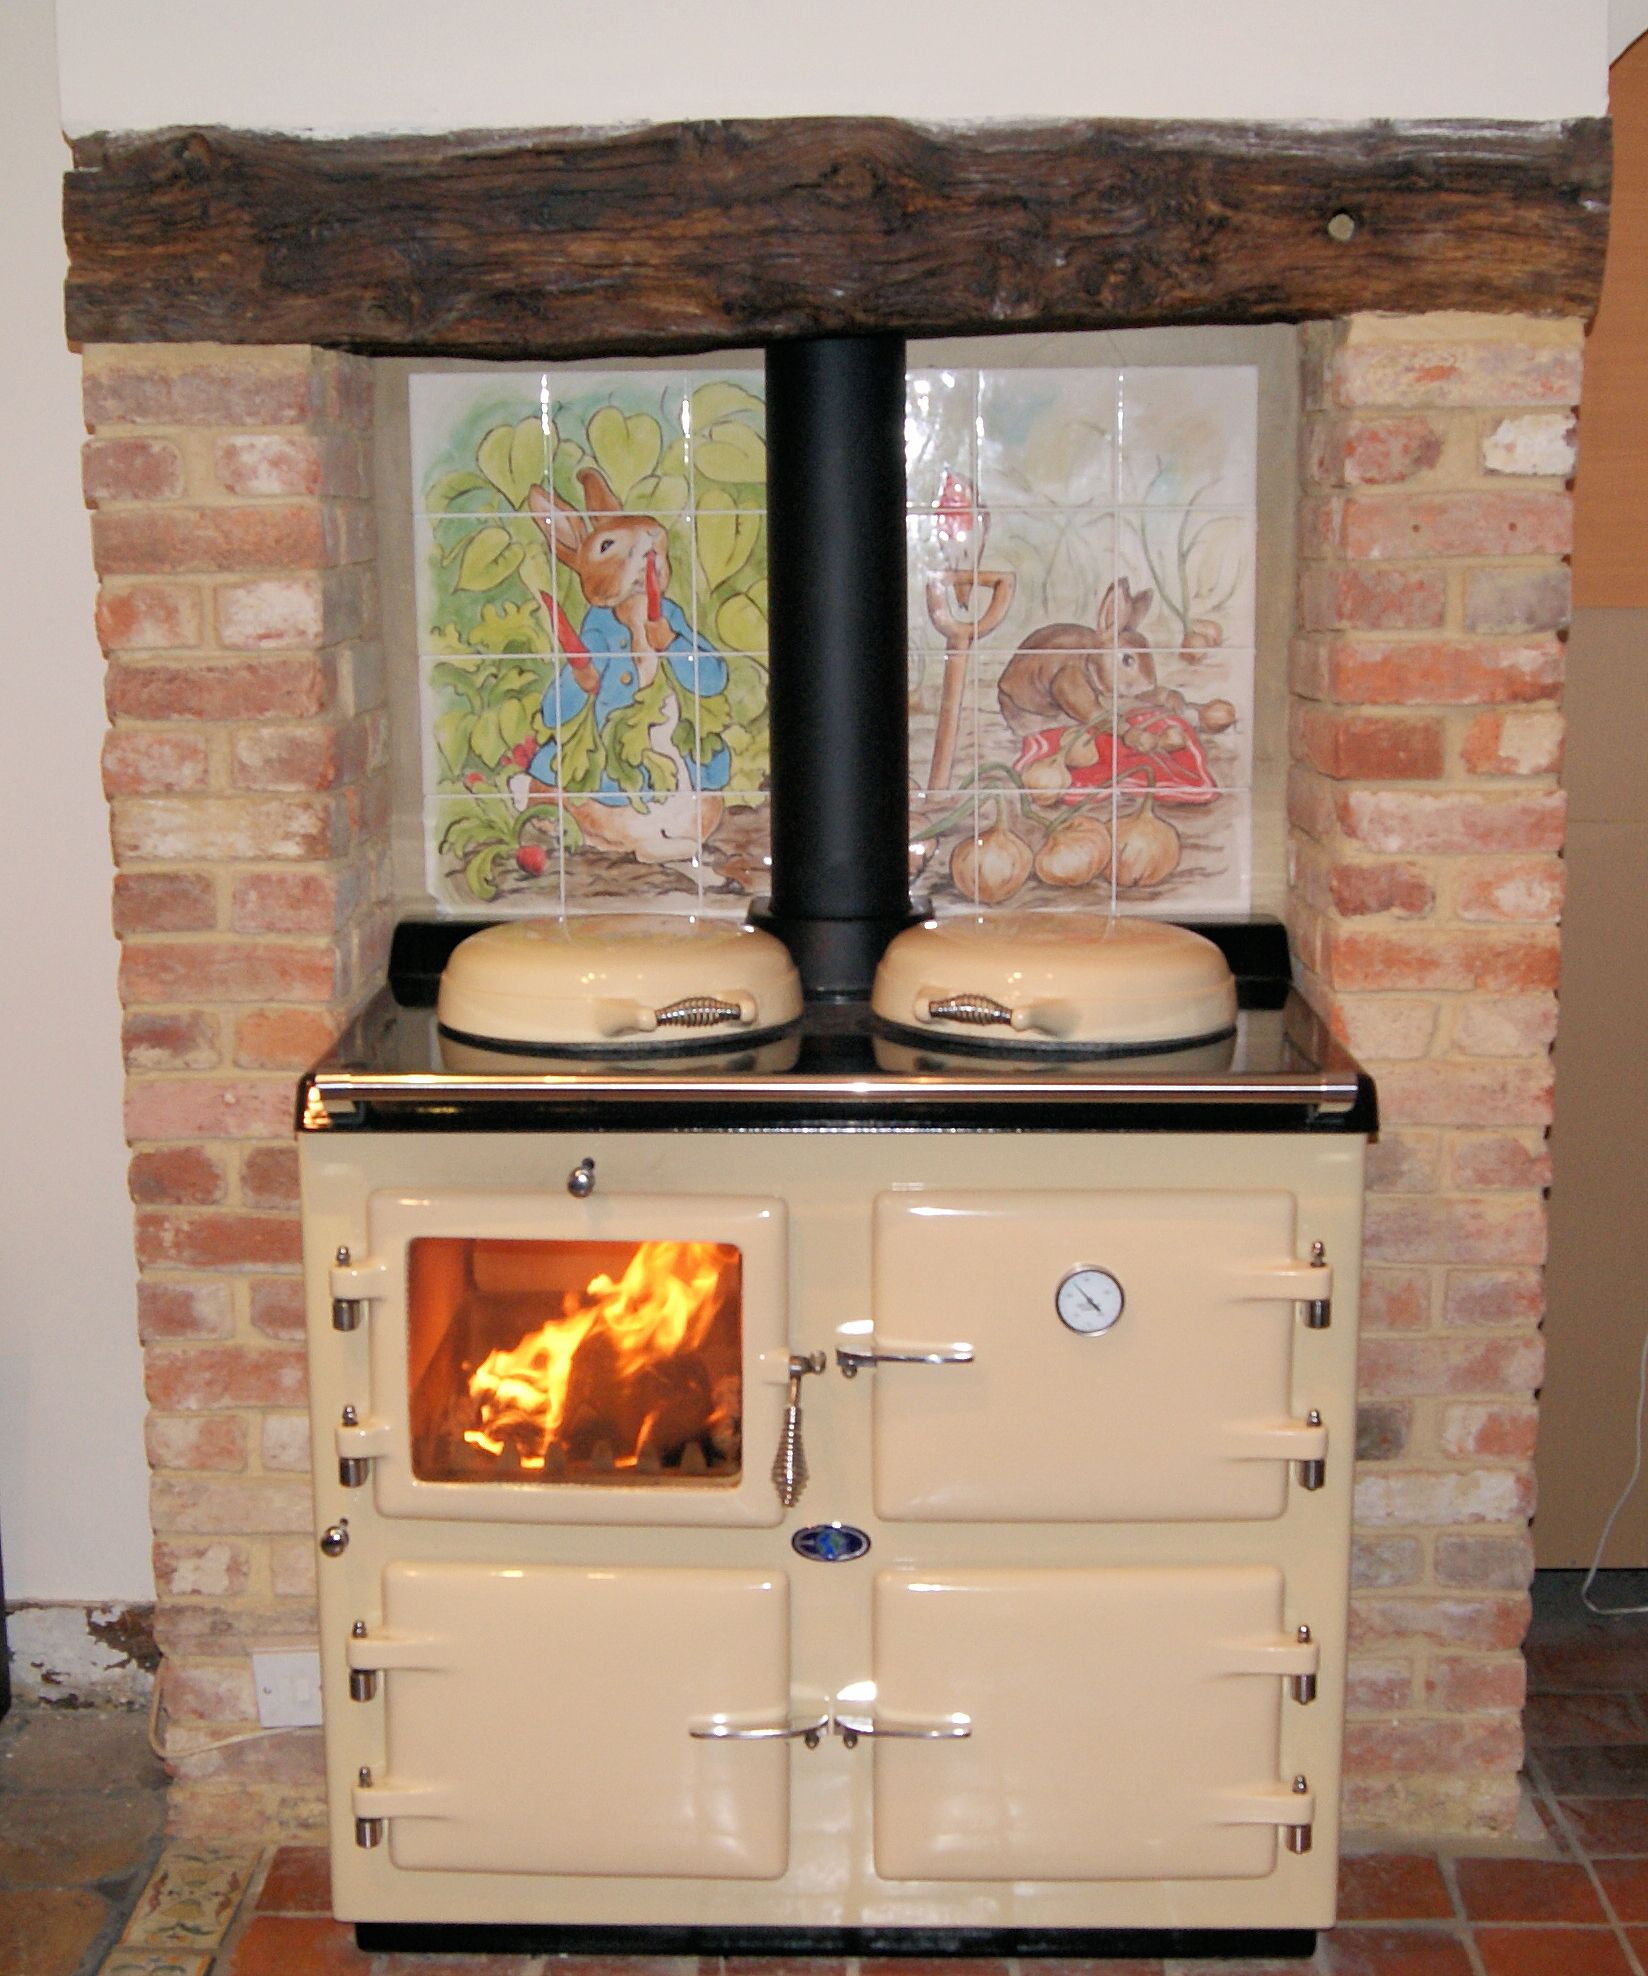 Country Kitchen Range: Wood Burning Ovens - Google Search